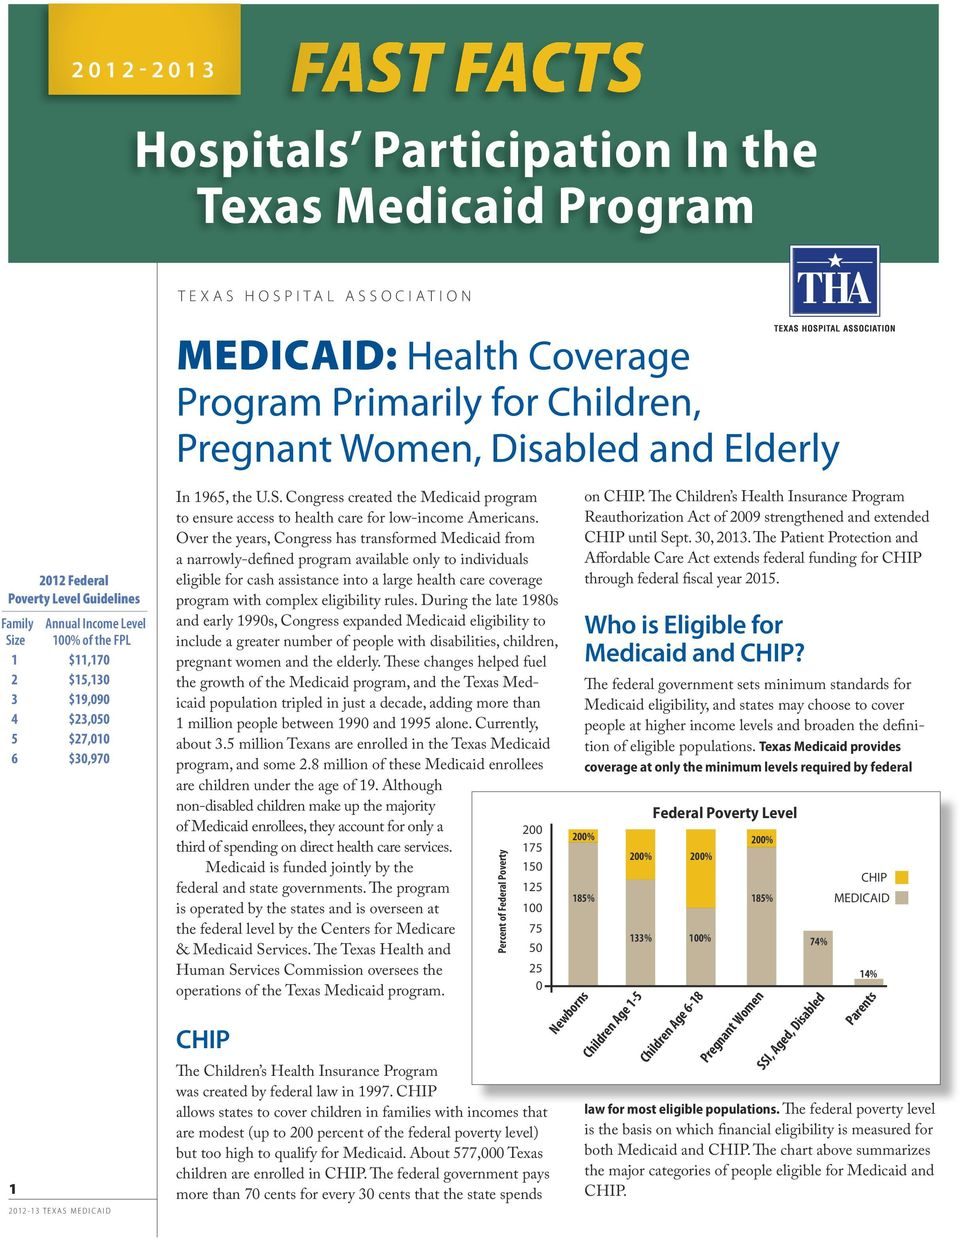 Over the years, Congress has transformed Medicaid from a narrowly-defined program available only to individuals eligible for cash assistance into a large health care coverage program with complex